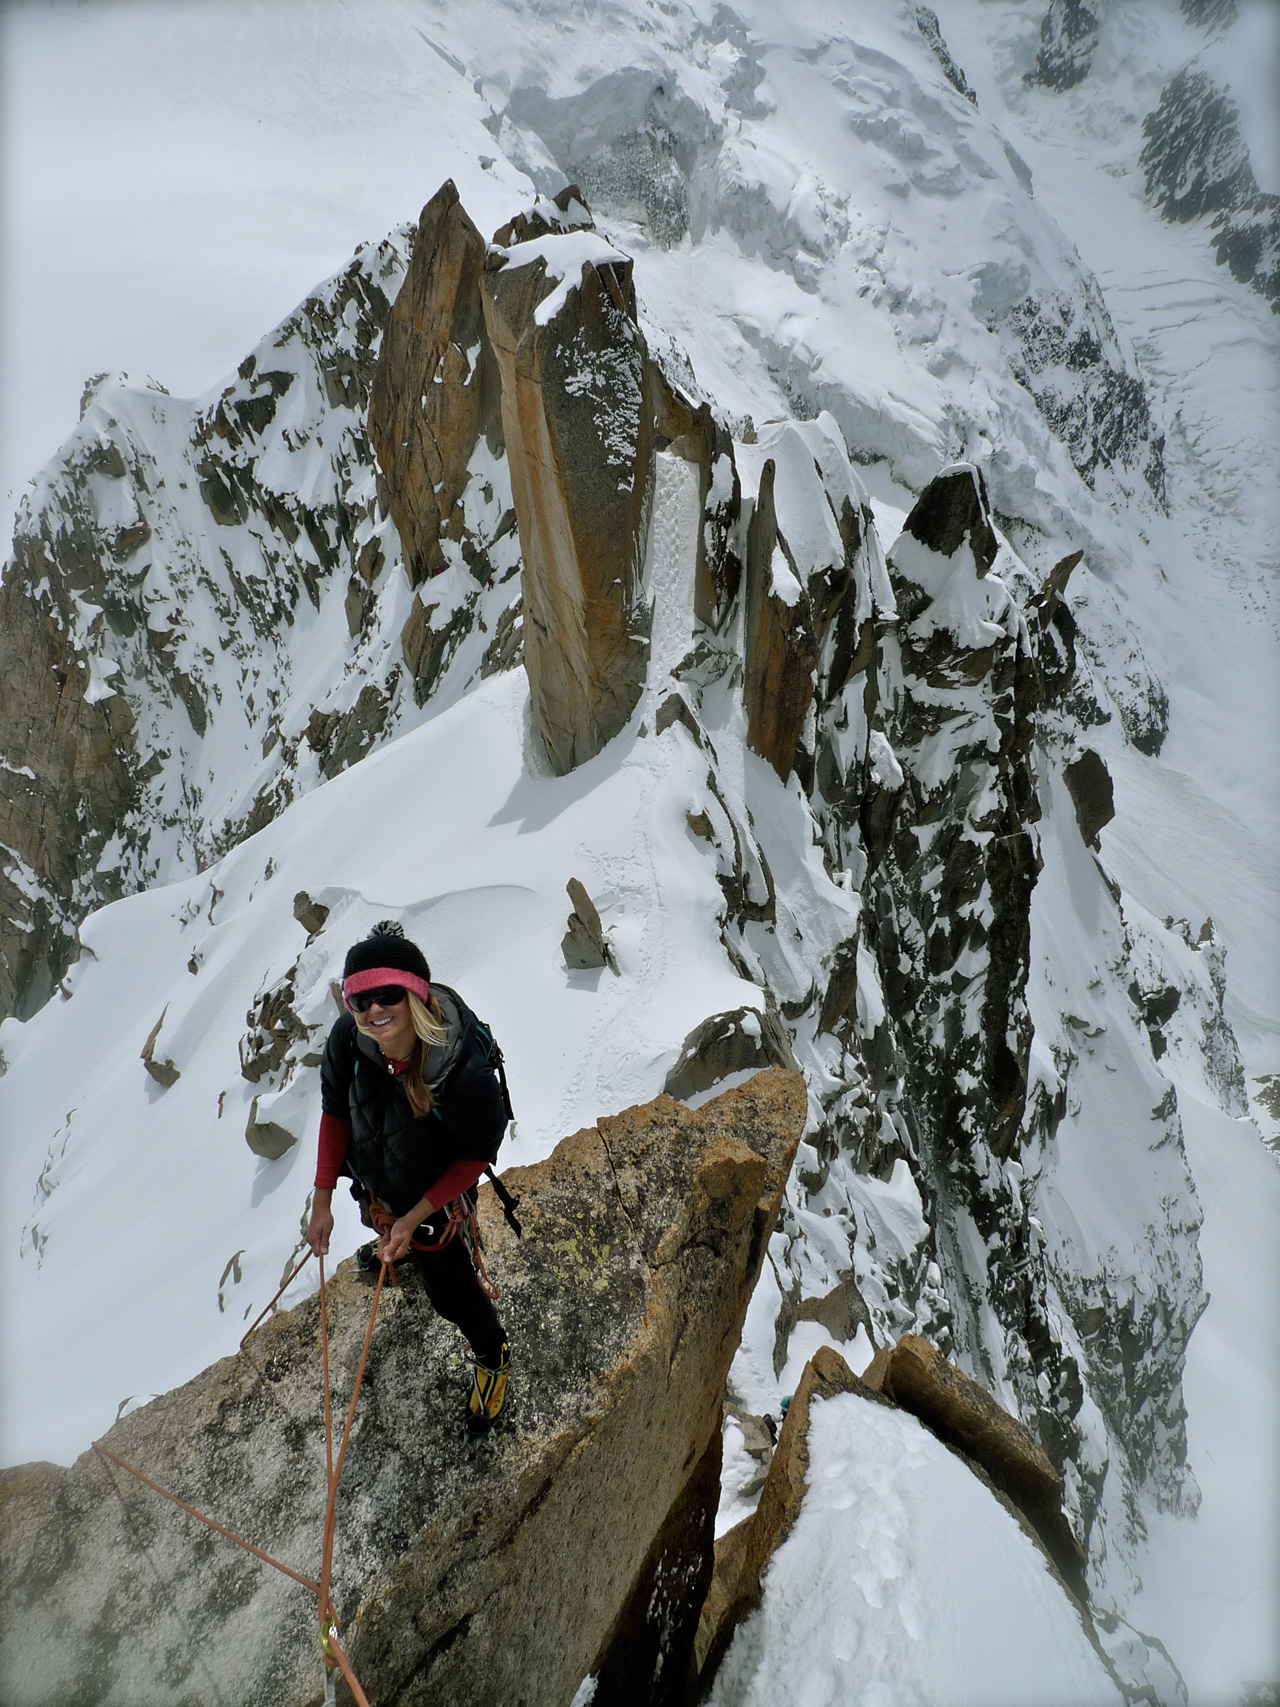 Liz Daley on the Cosmique Arete in Chamonix Photo by Davide De Masi